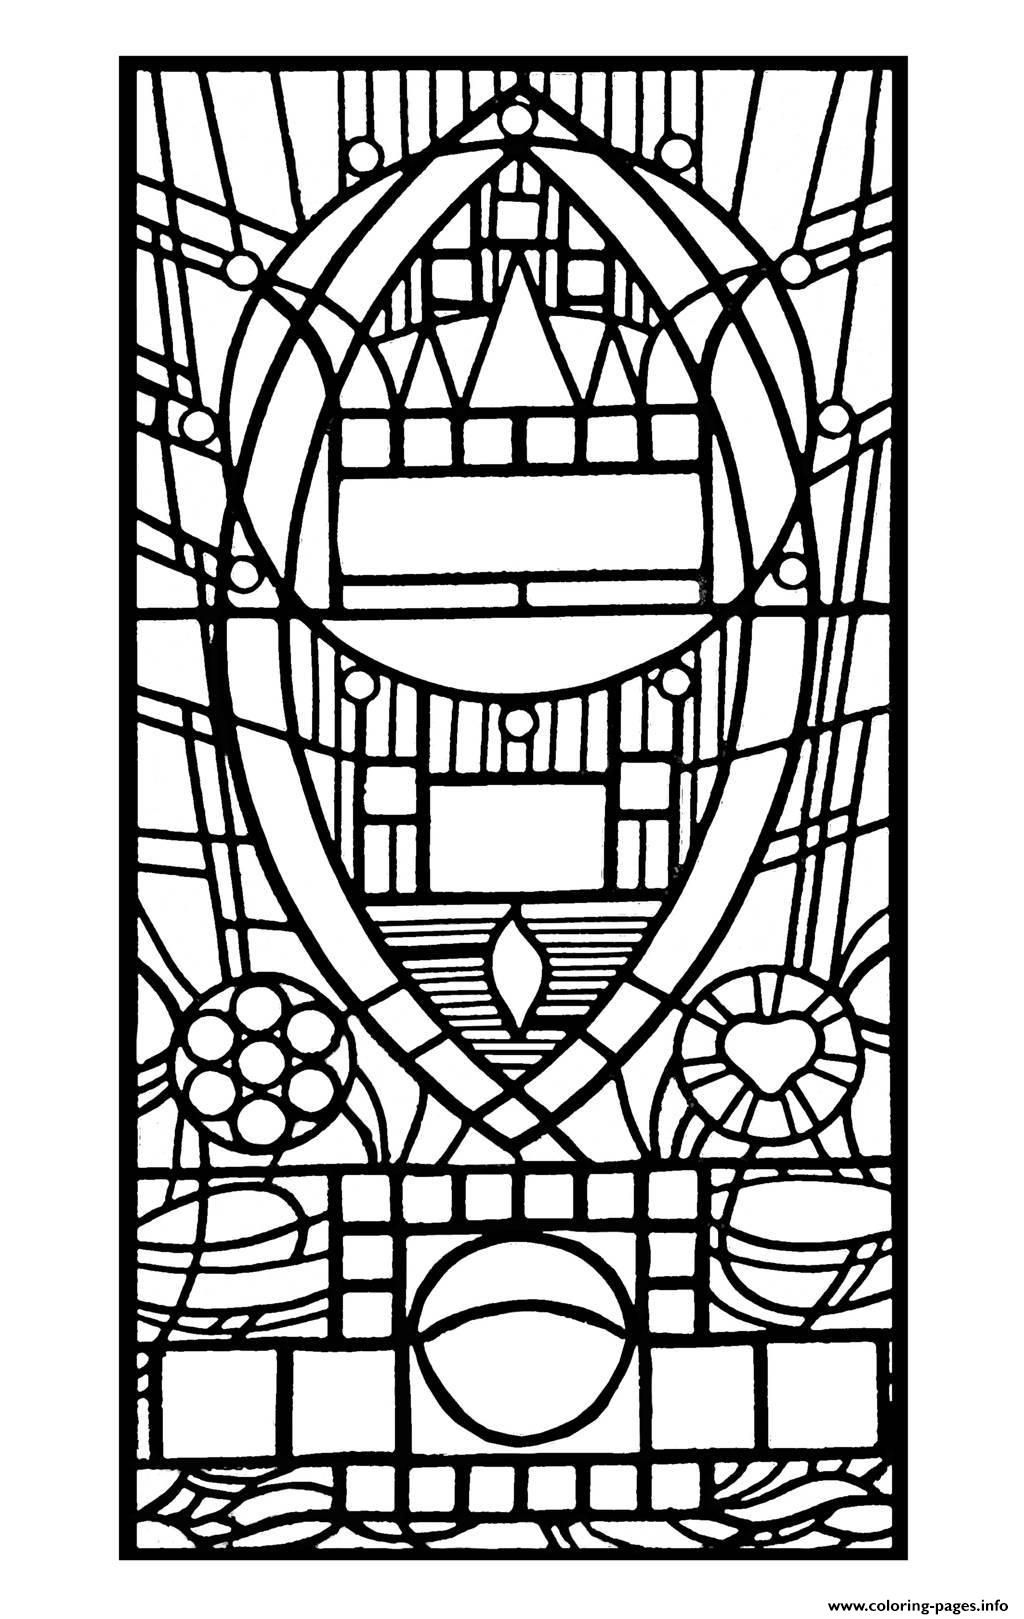 Beauty and the beast stained glass coloring page coloring home - Coloriage vitraux ...